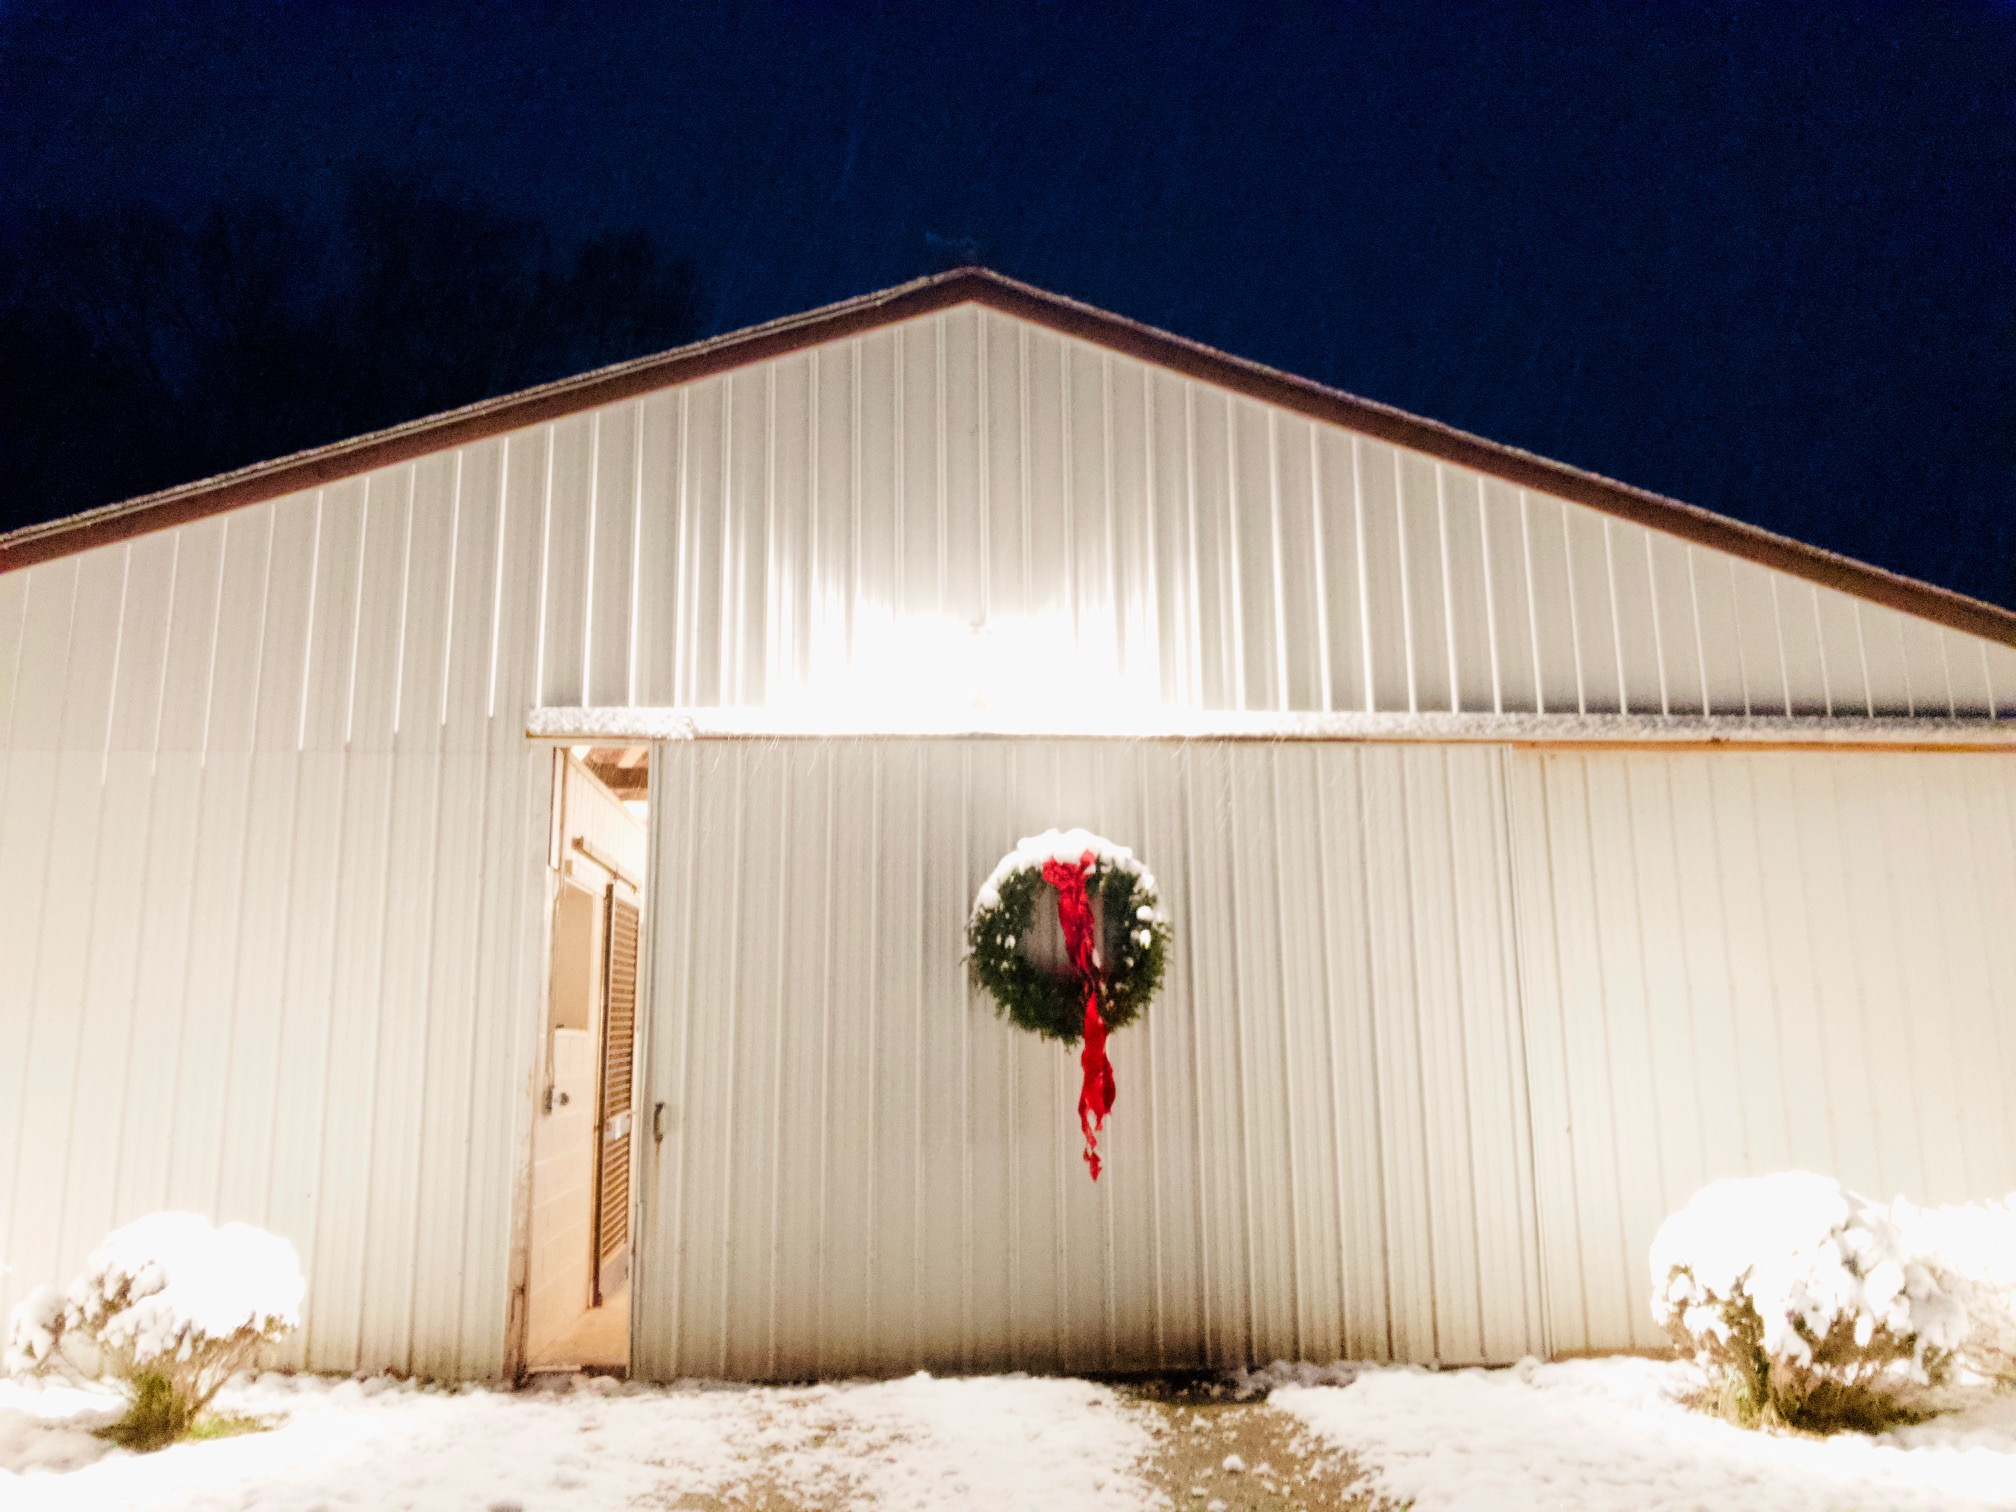 It's beginning to look a lot like Christmas at Foxie G.